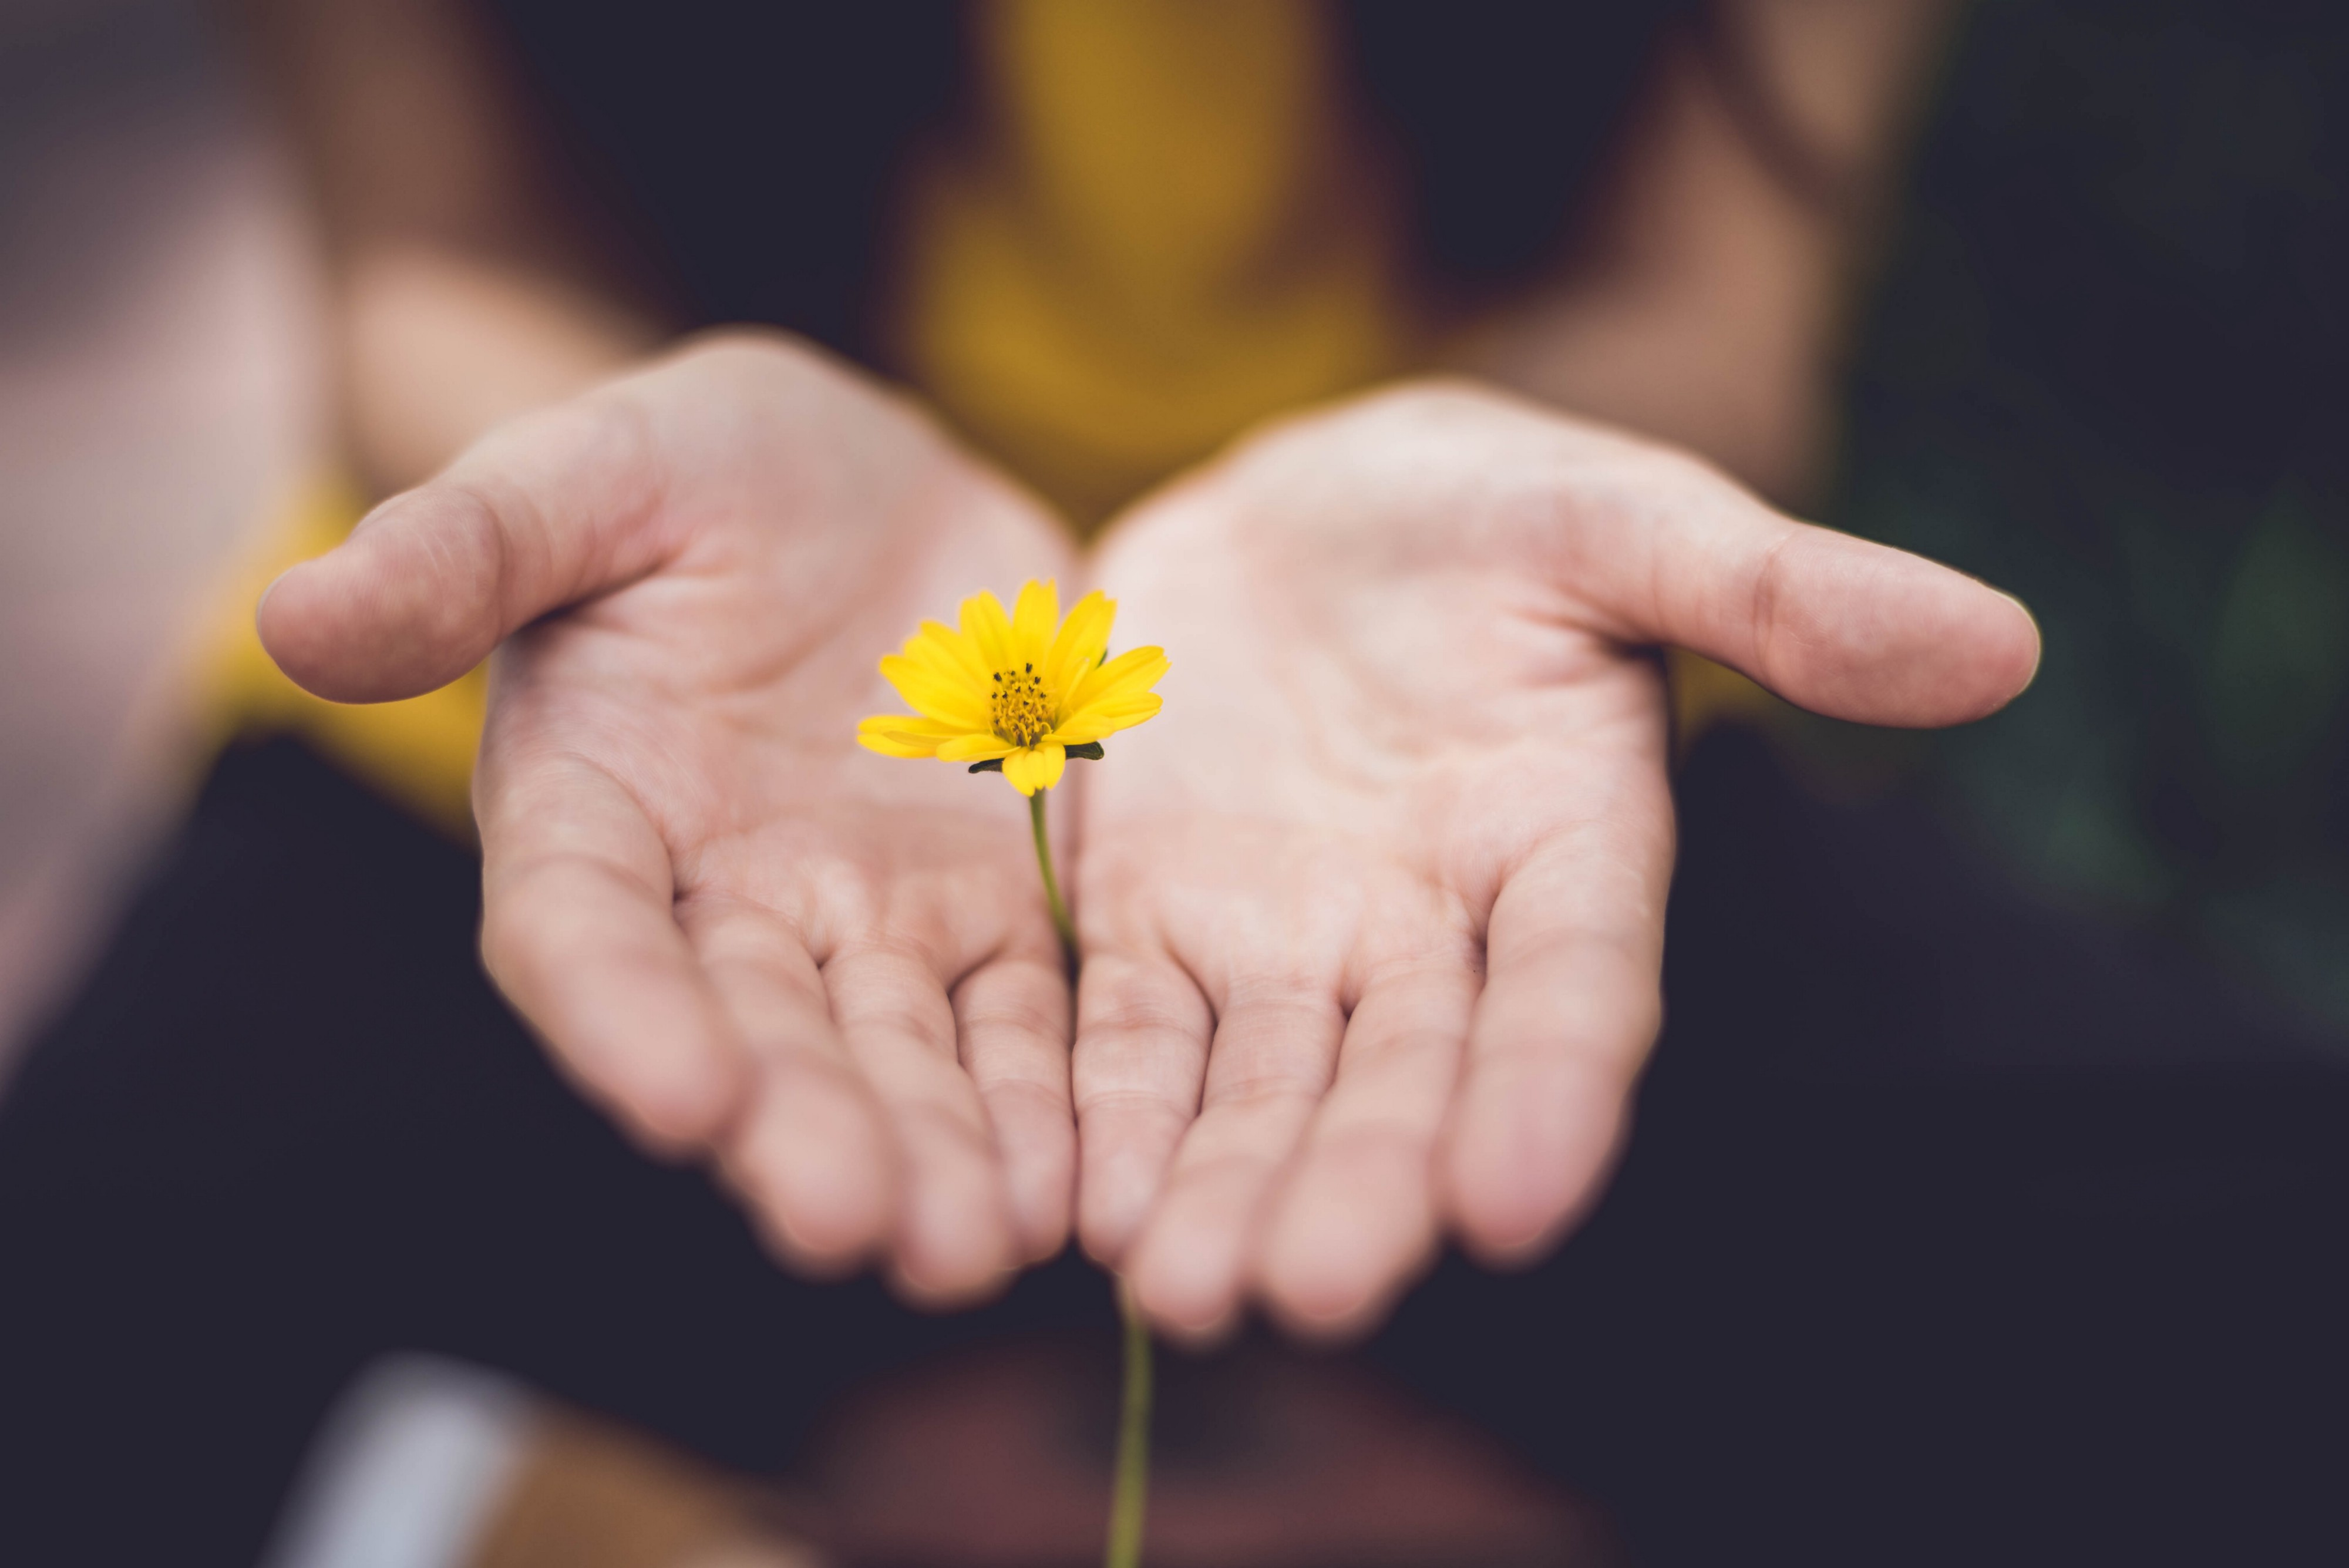 A woman's hands holding a small yellow flower between them (palms up).